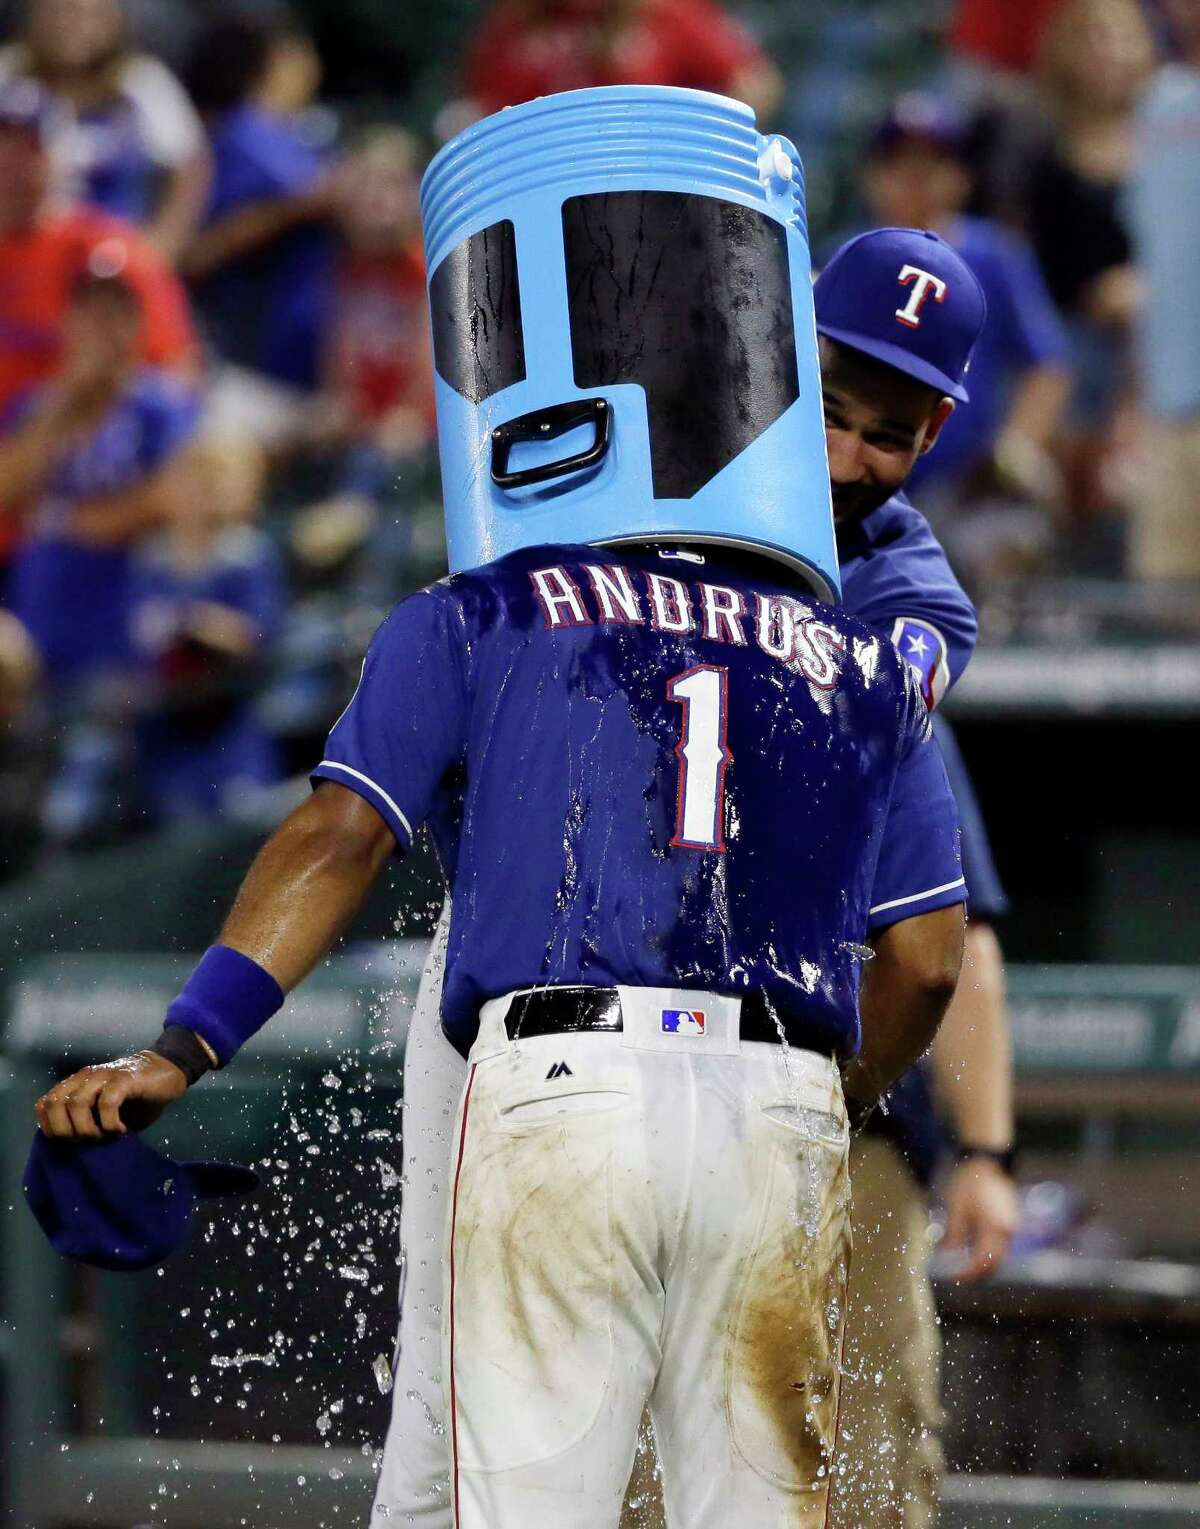 Texas Rangers' Elvis Andrus has a water cooler placed over his head after being doused by Nomar Mazara, rear, following thet team's 5-1 win over the Seattle Mariners in a baseball game Wednesday, Aug. 2, 2017, in Arlington, Texas. (AP Photo/Tony Gutierrez) ORG XMIT: ARL119 ORG XMIT: MER2017080300090390